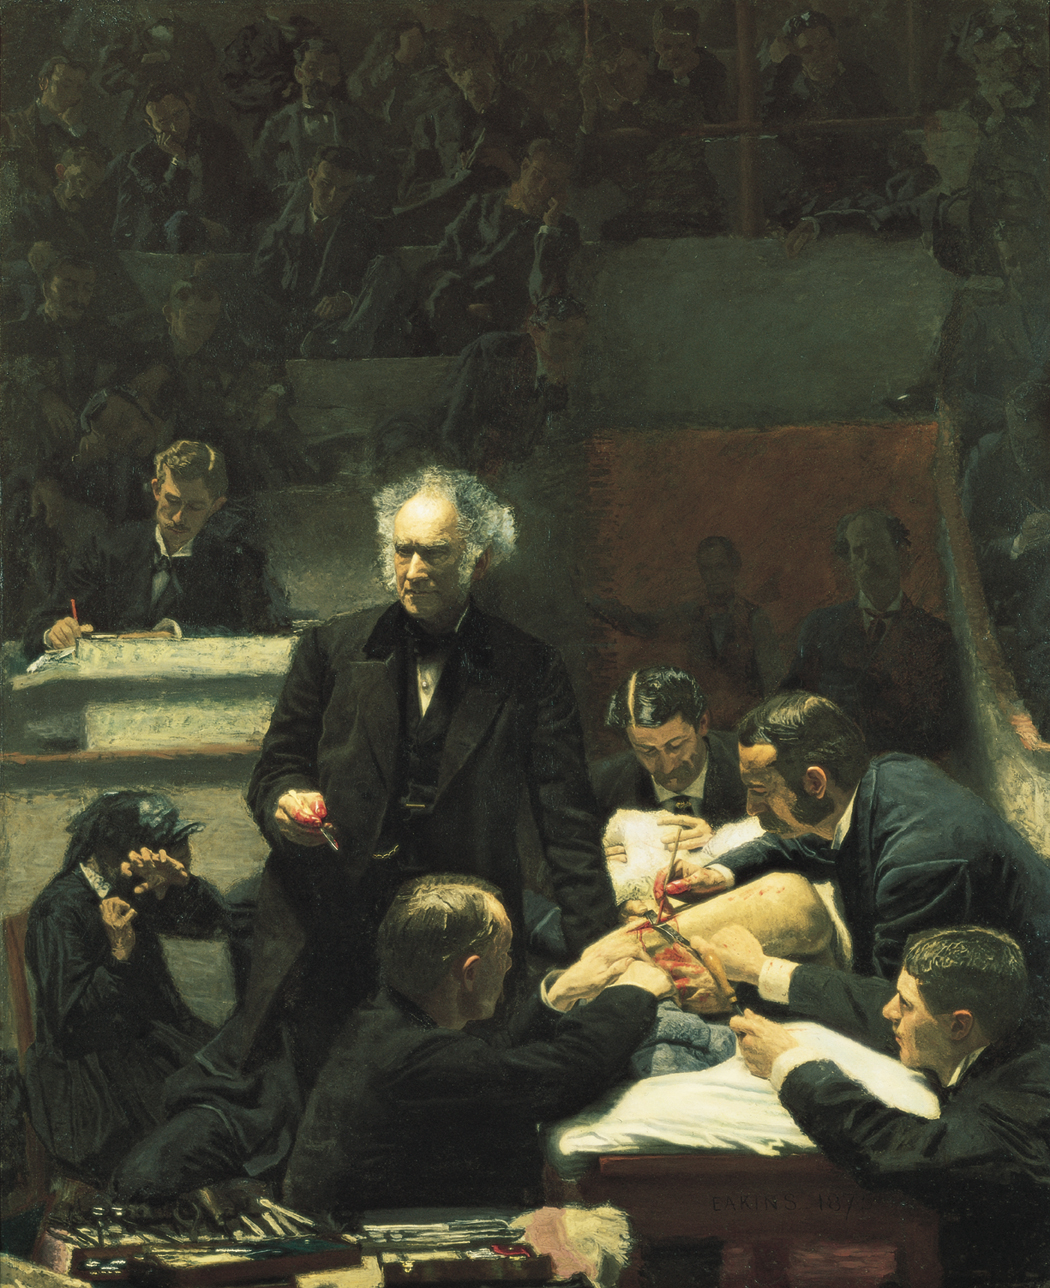 Ignorance is Bliss and often Gross : Famous portrait by Thomas Eakins shows reknown surgeon Dr. Samuel Gross and his team perfroming an amputation in unsanitary conditons. 'Little, if any faith, is placed by any enlightened or experienced surgeon on this side of the Atlantic in the so-called carbolic acid treatment of Professor Lister,' said Gross